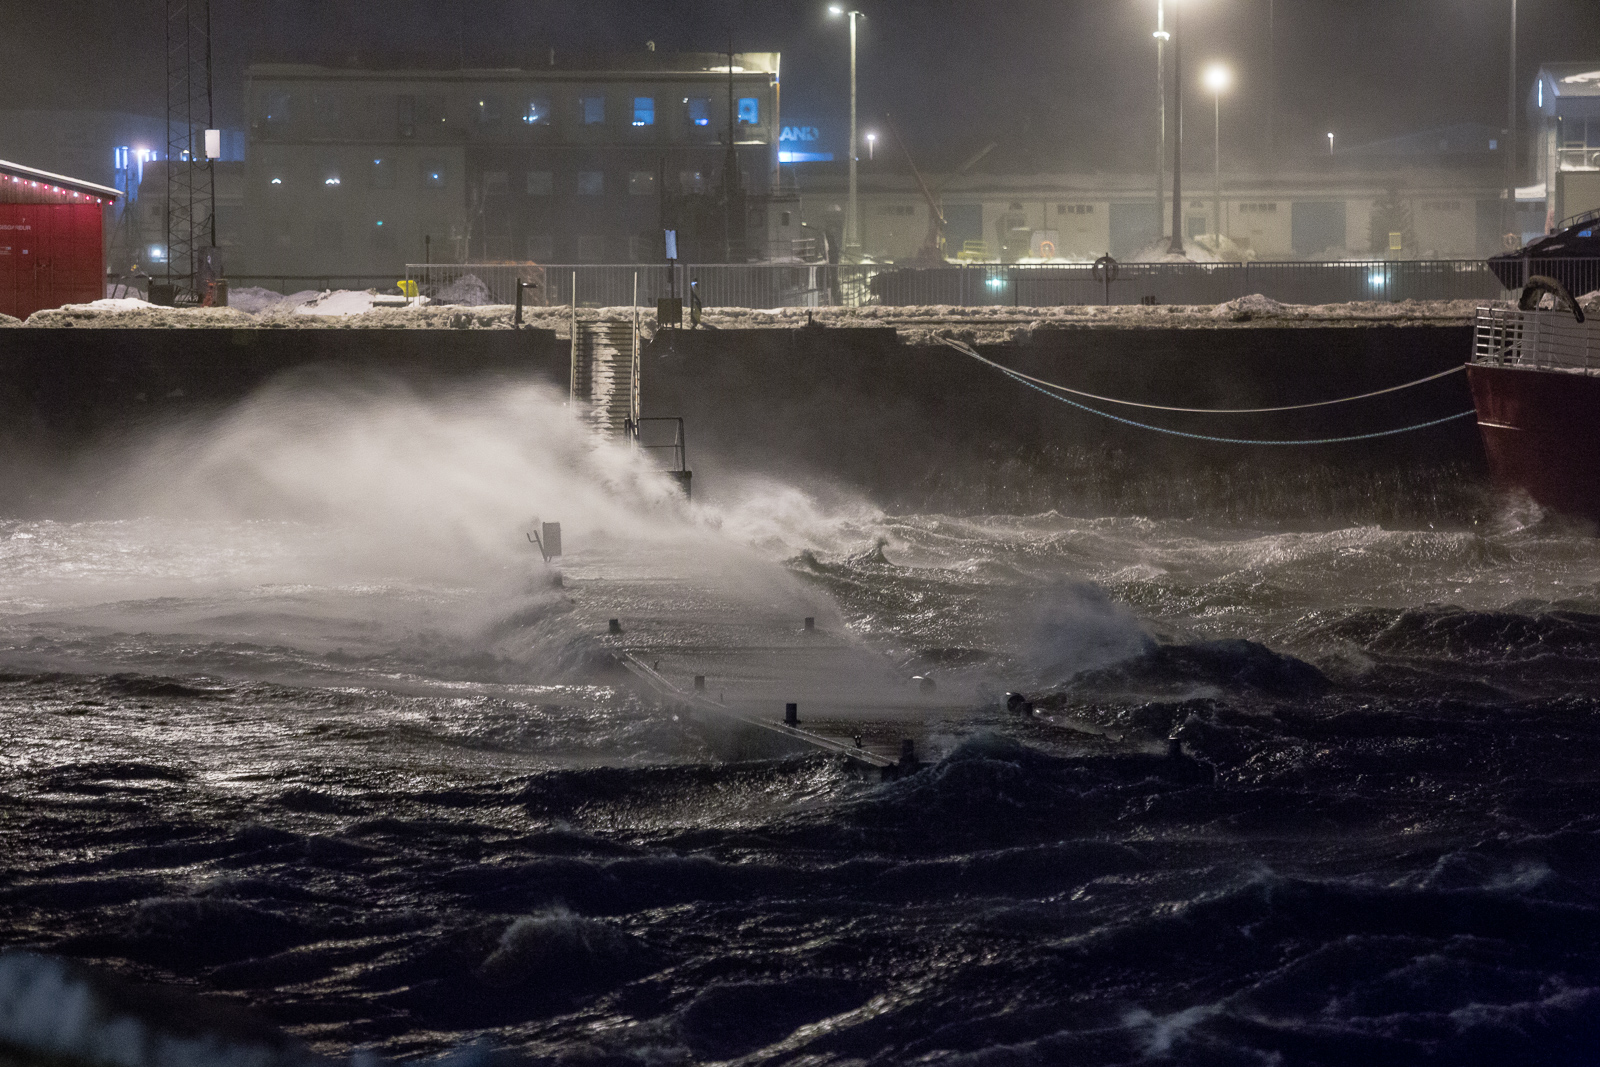 Miserable Storm Hits Iceland, Many Roads Closed